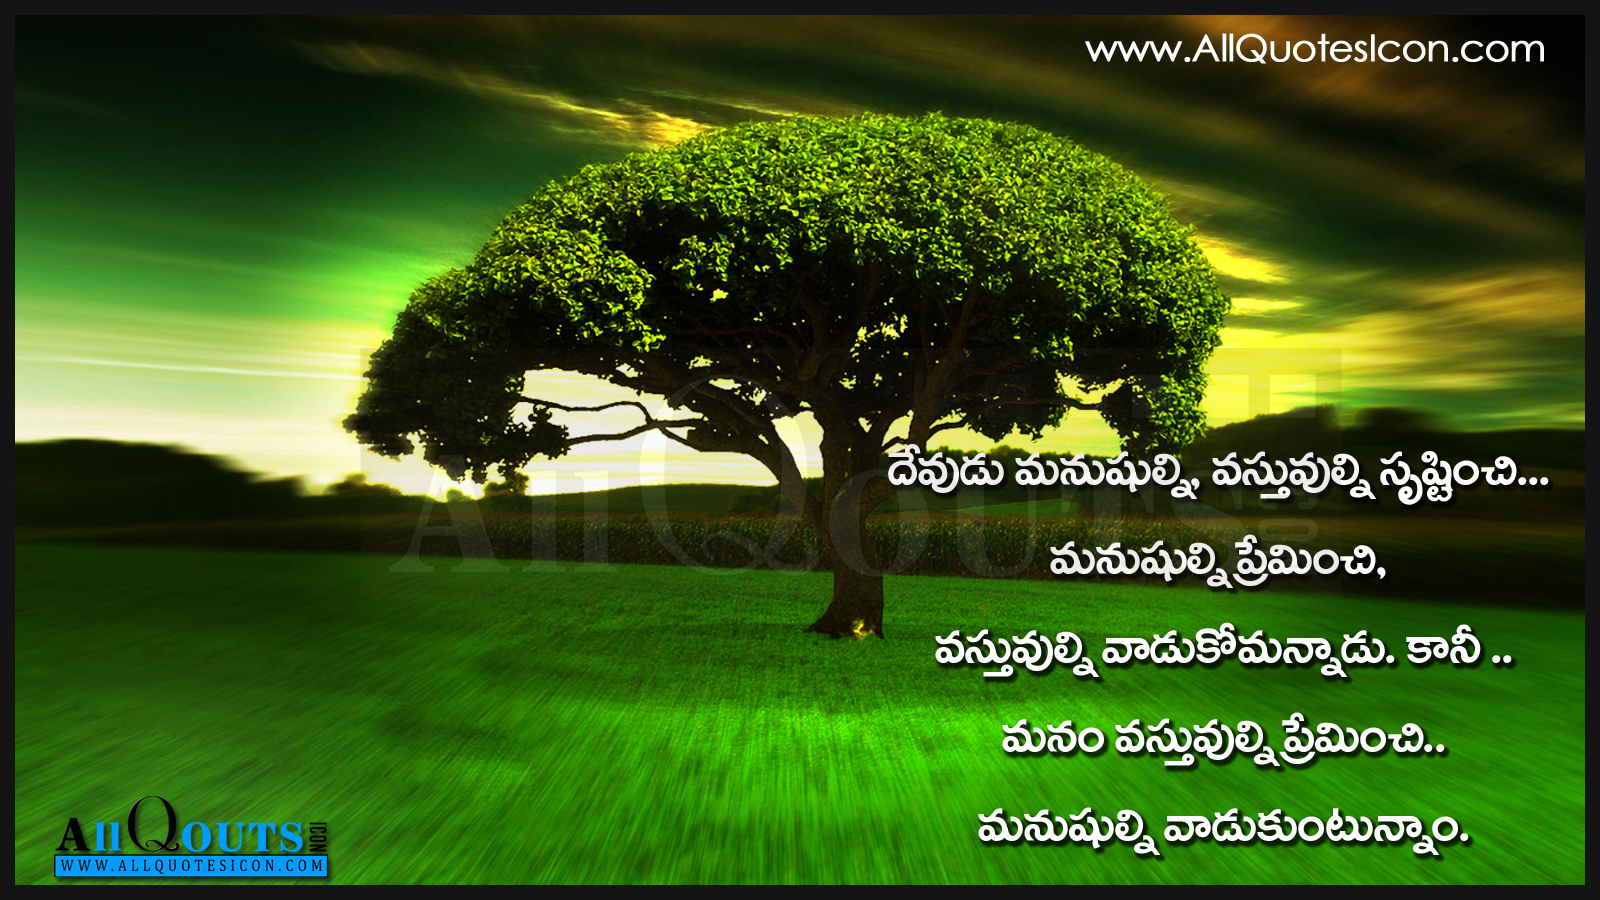 Beautiful Life Quotations And Thoughts In Telugu With Awesome Hd Wallpapers  512